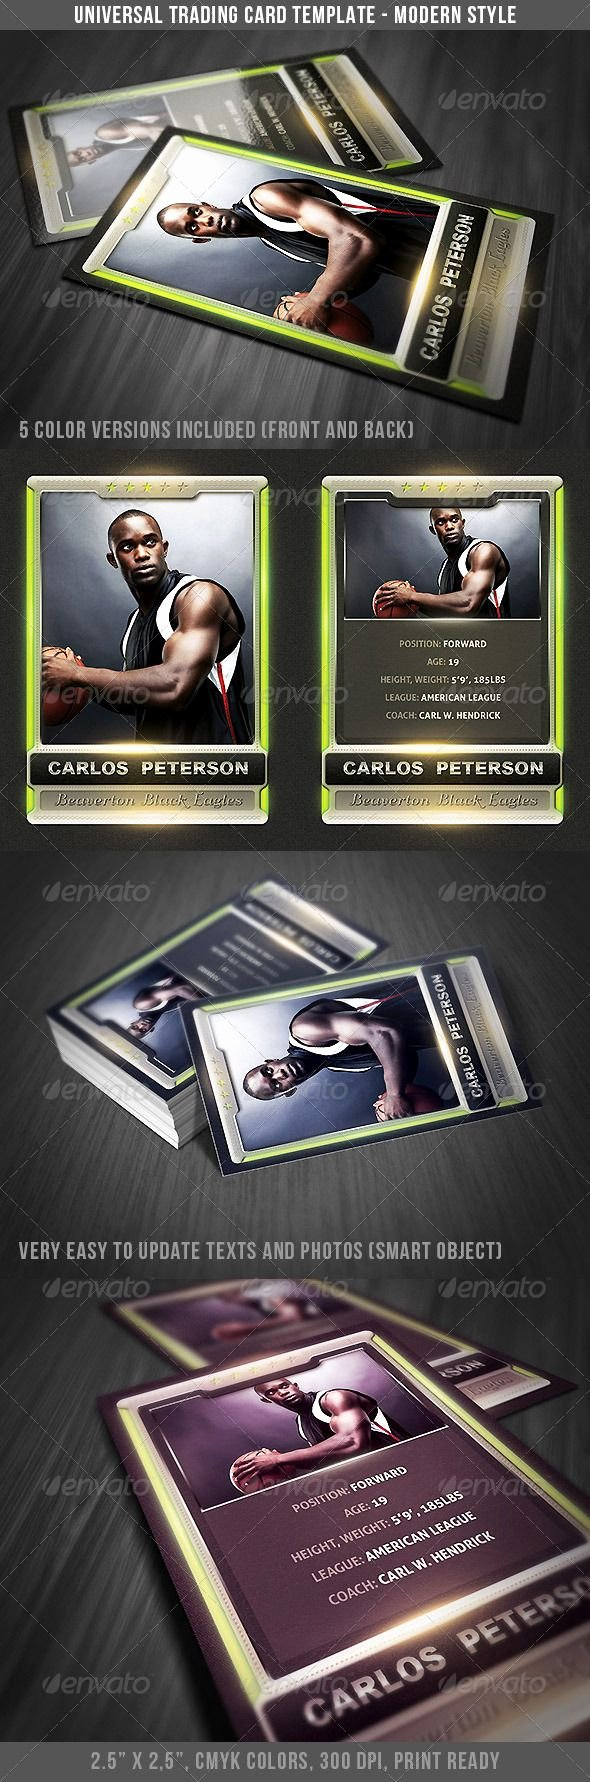 Trading Card Template Photoshop Inspirational Best 25 Trading Card Template Ideas On Pinterest